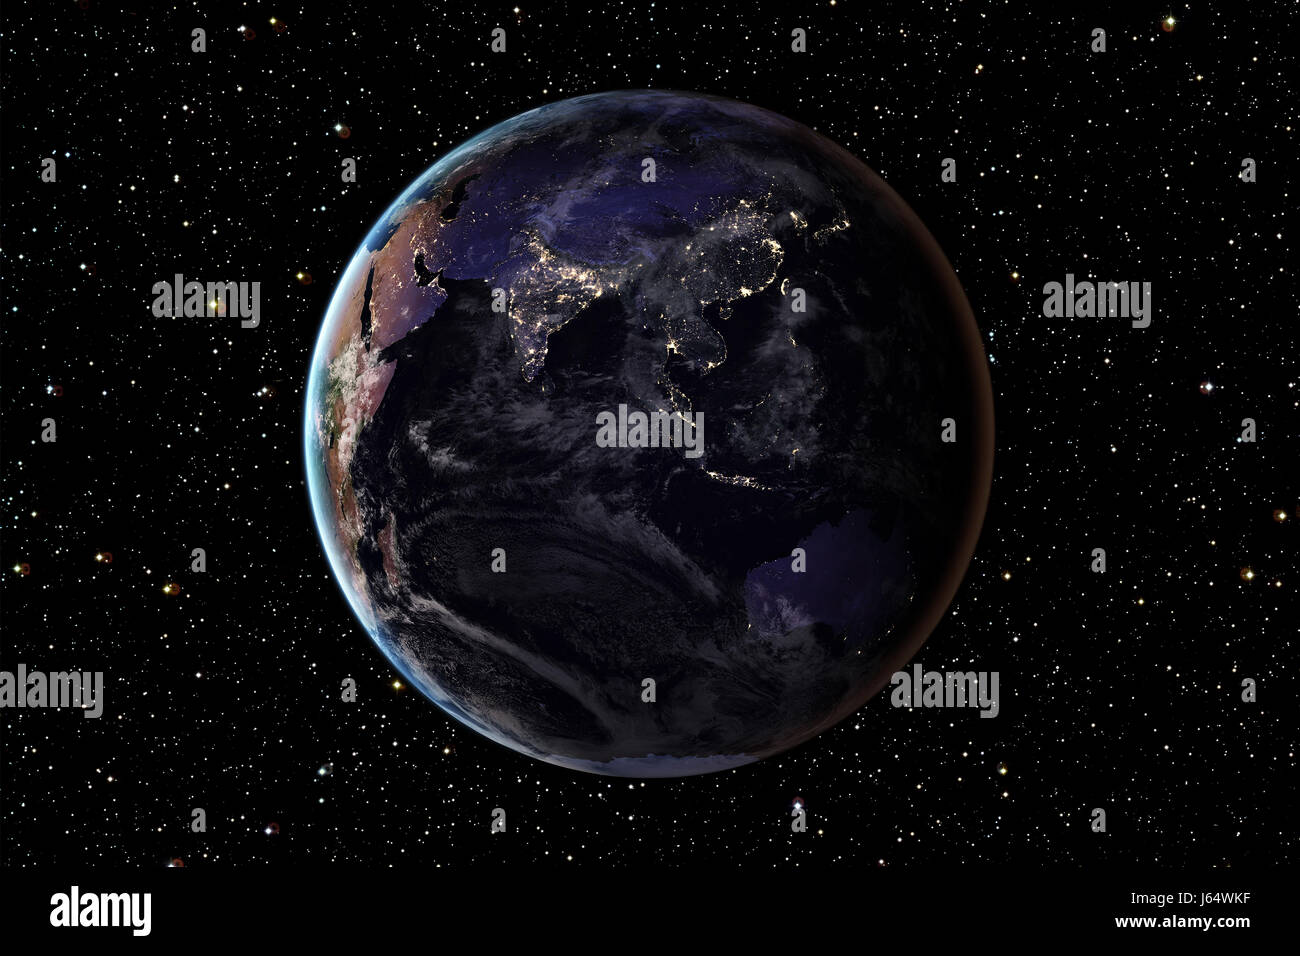 planet earth from space at night - photo #31